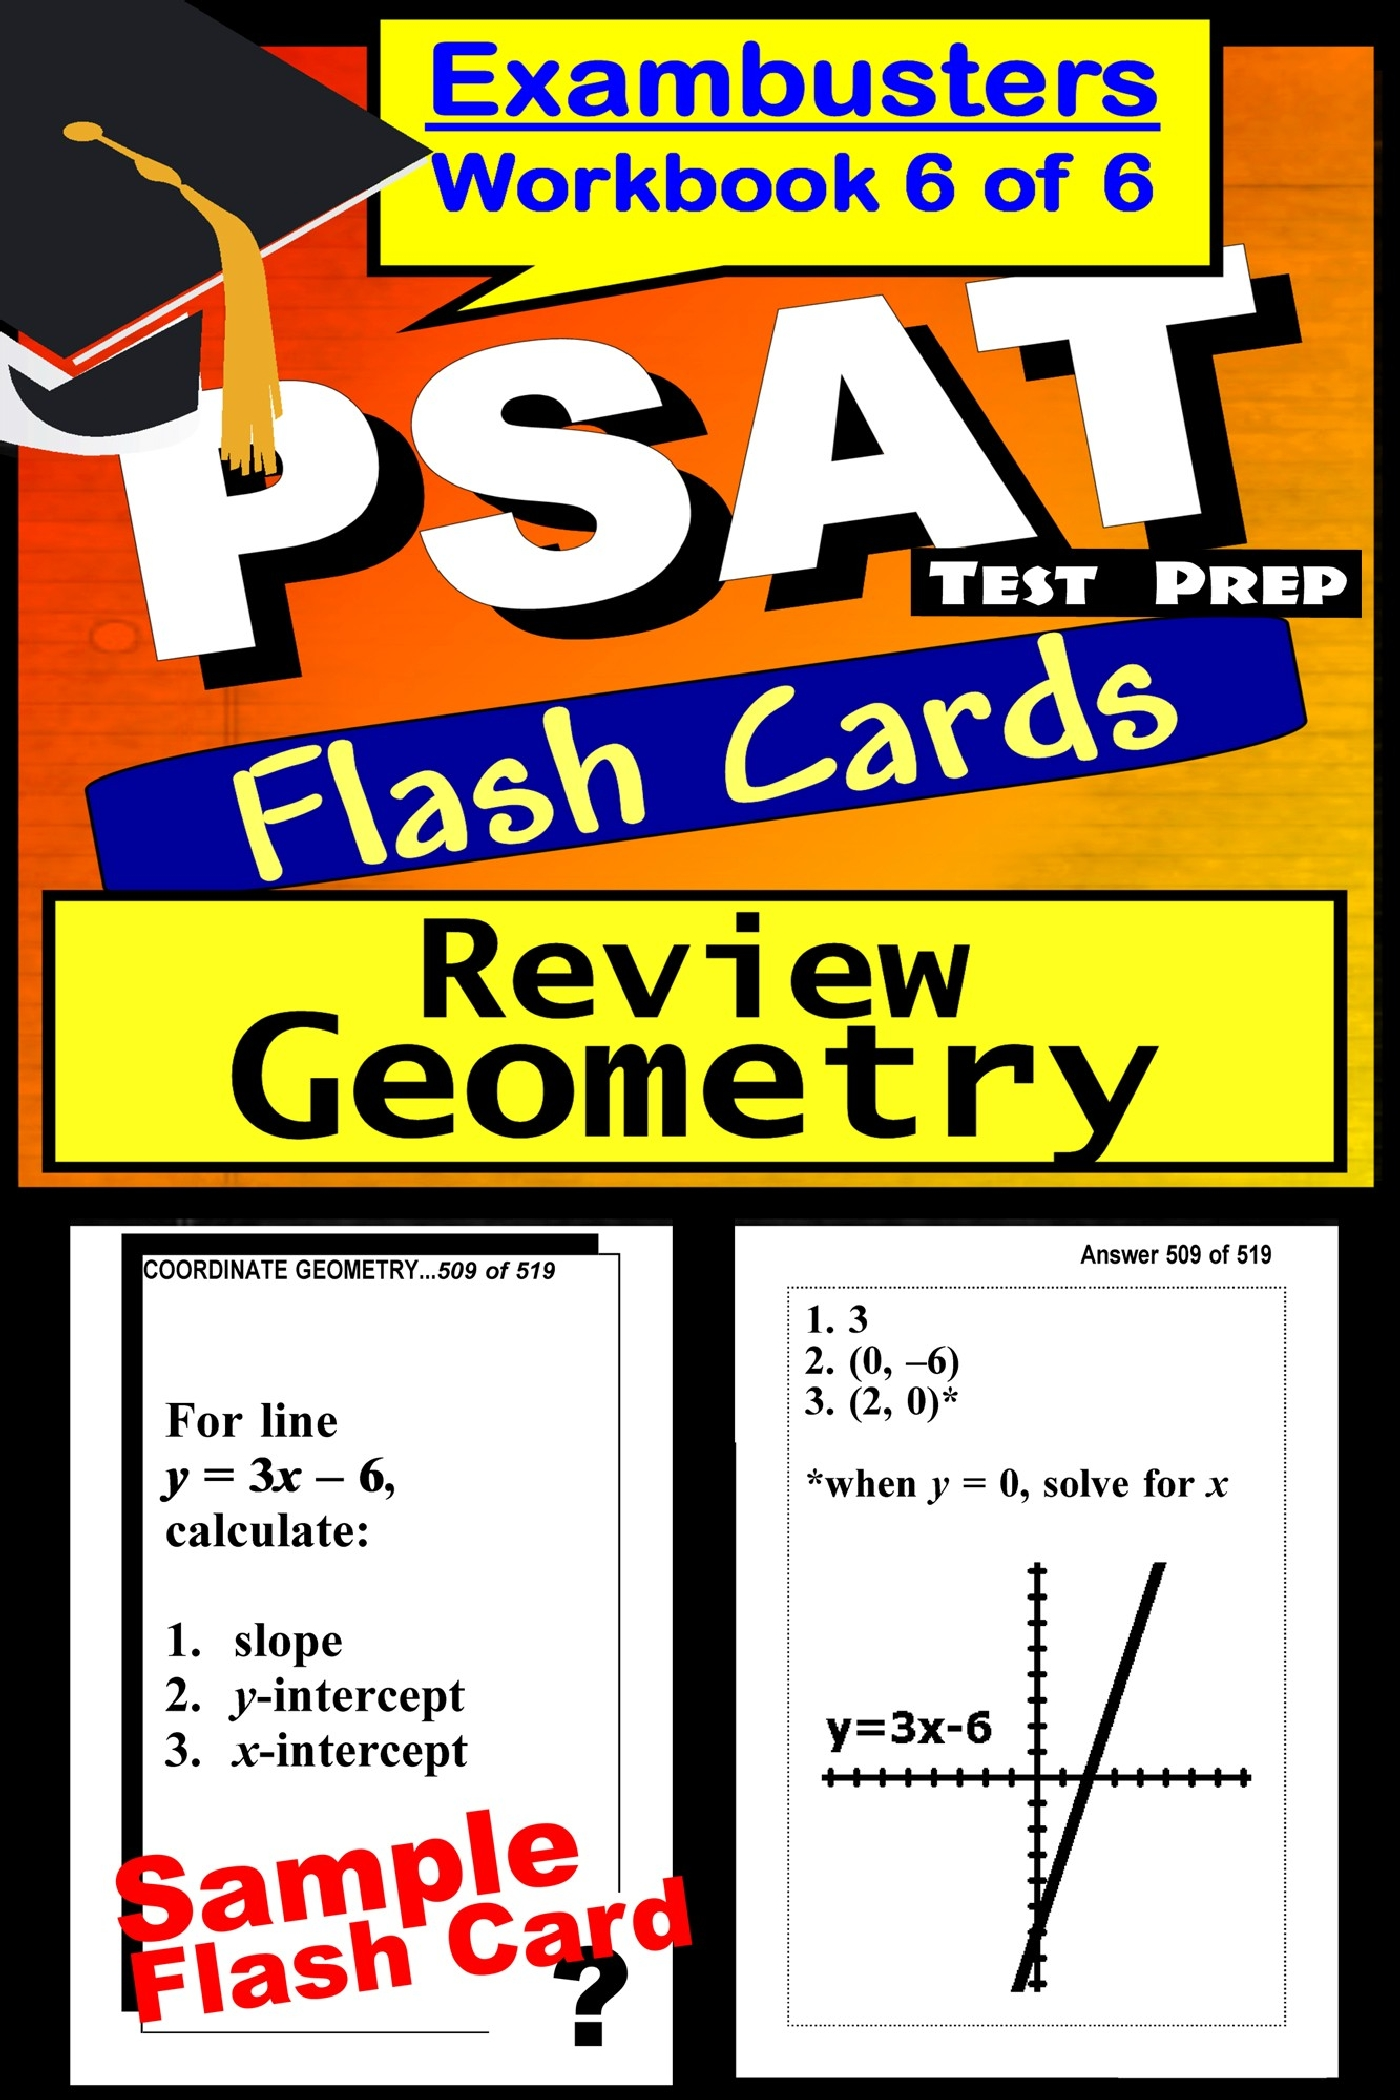 PSAT Test Prep Geometry Review--Exambusters Flash Cards--Workbook 6 of 6: PSAT Exam Study Guide